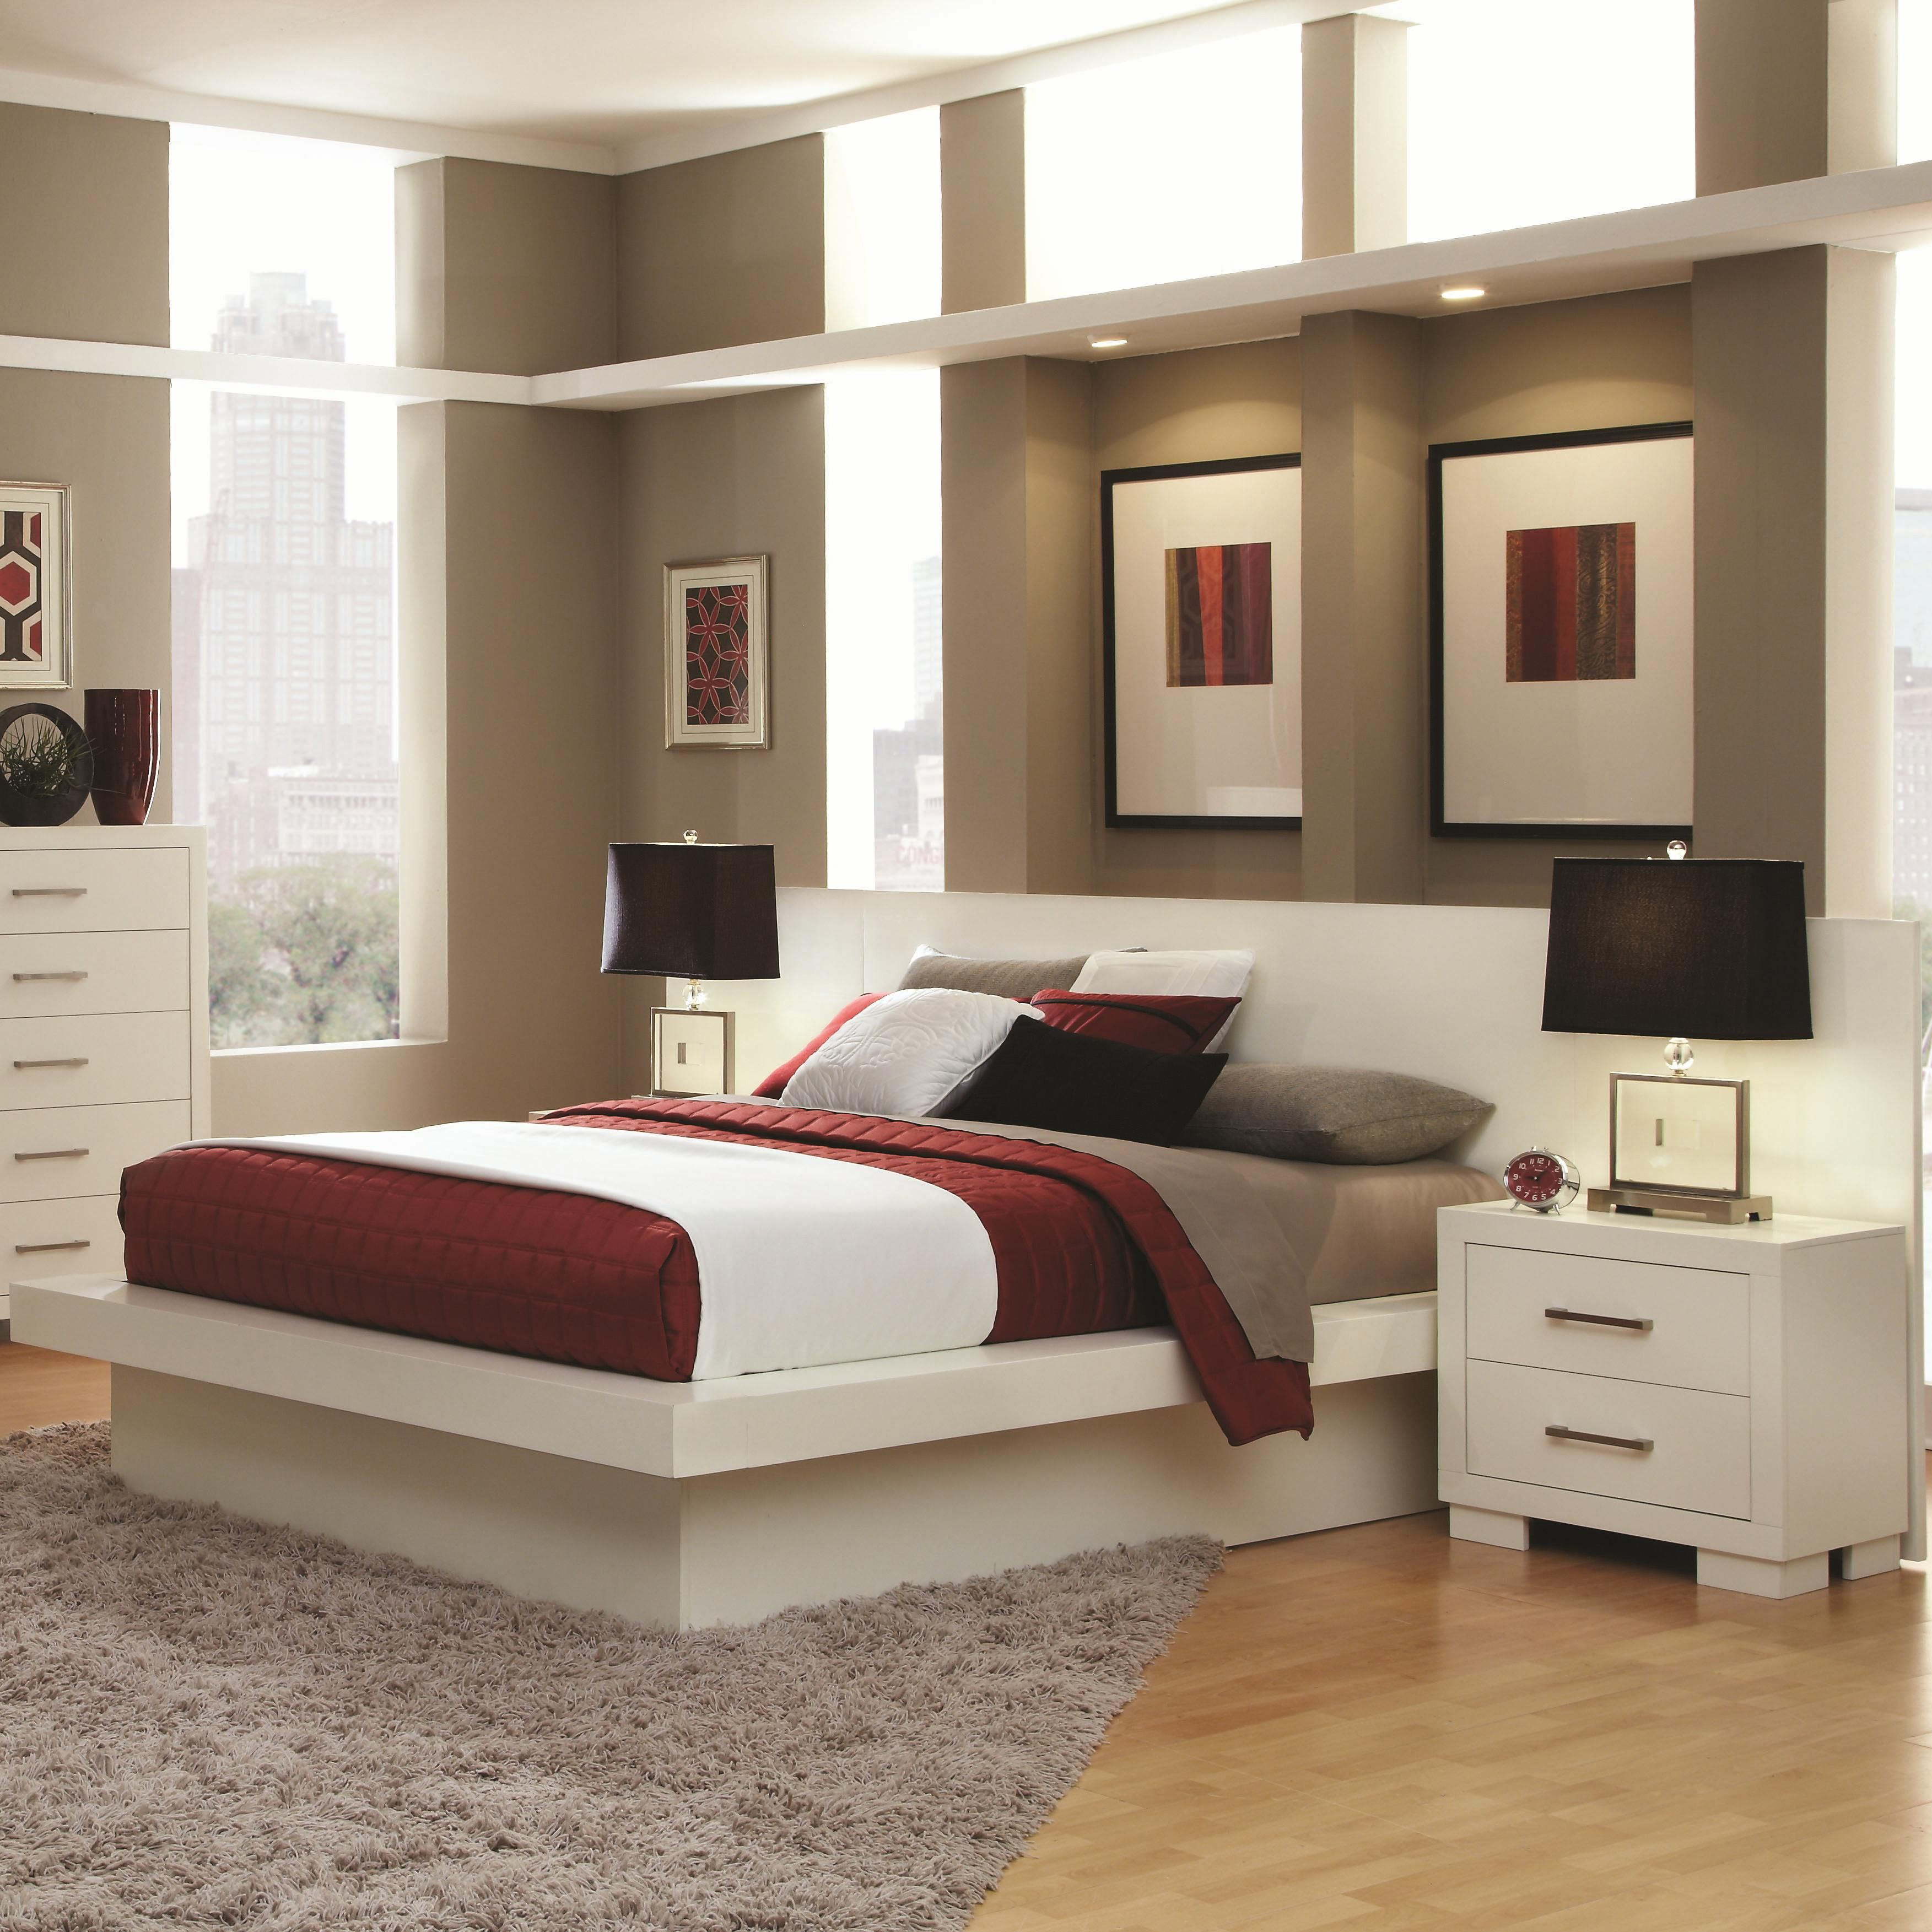 Jessica King Platform Bed With Rail Seating And Lights By